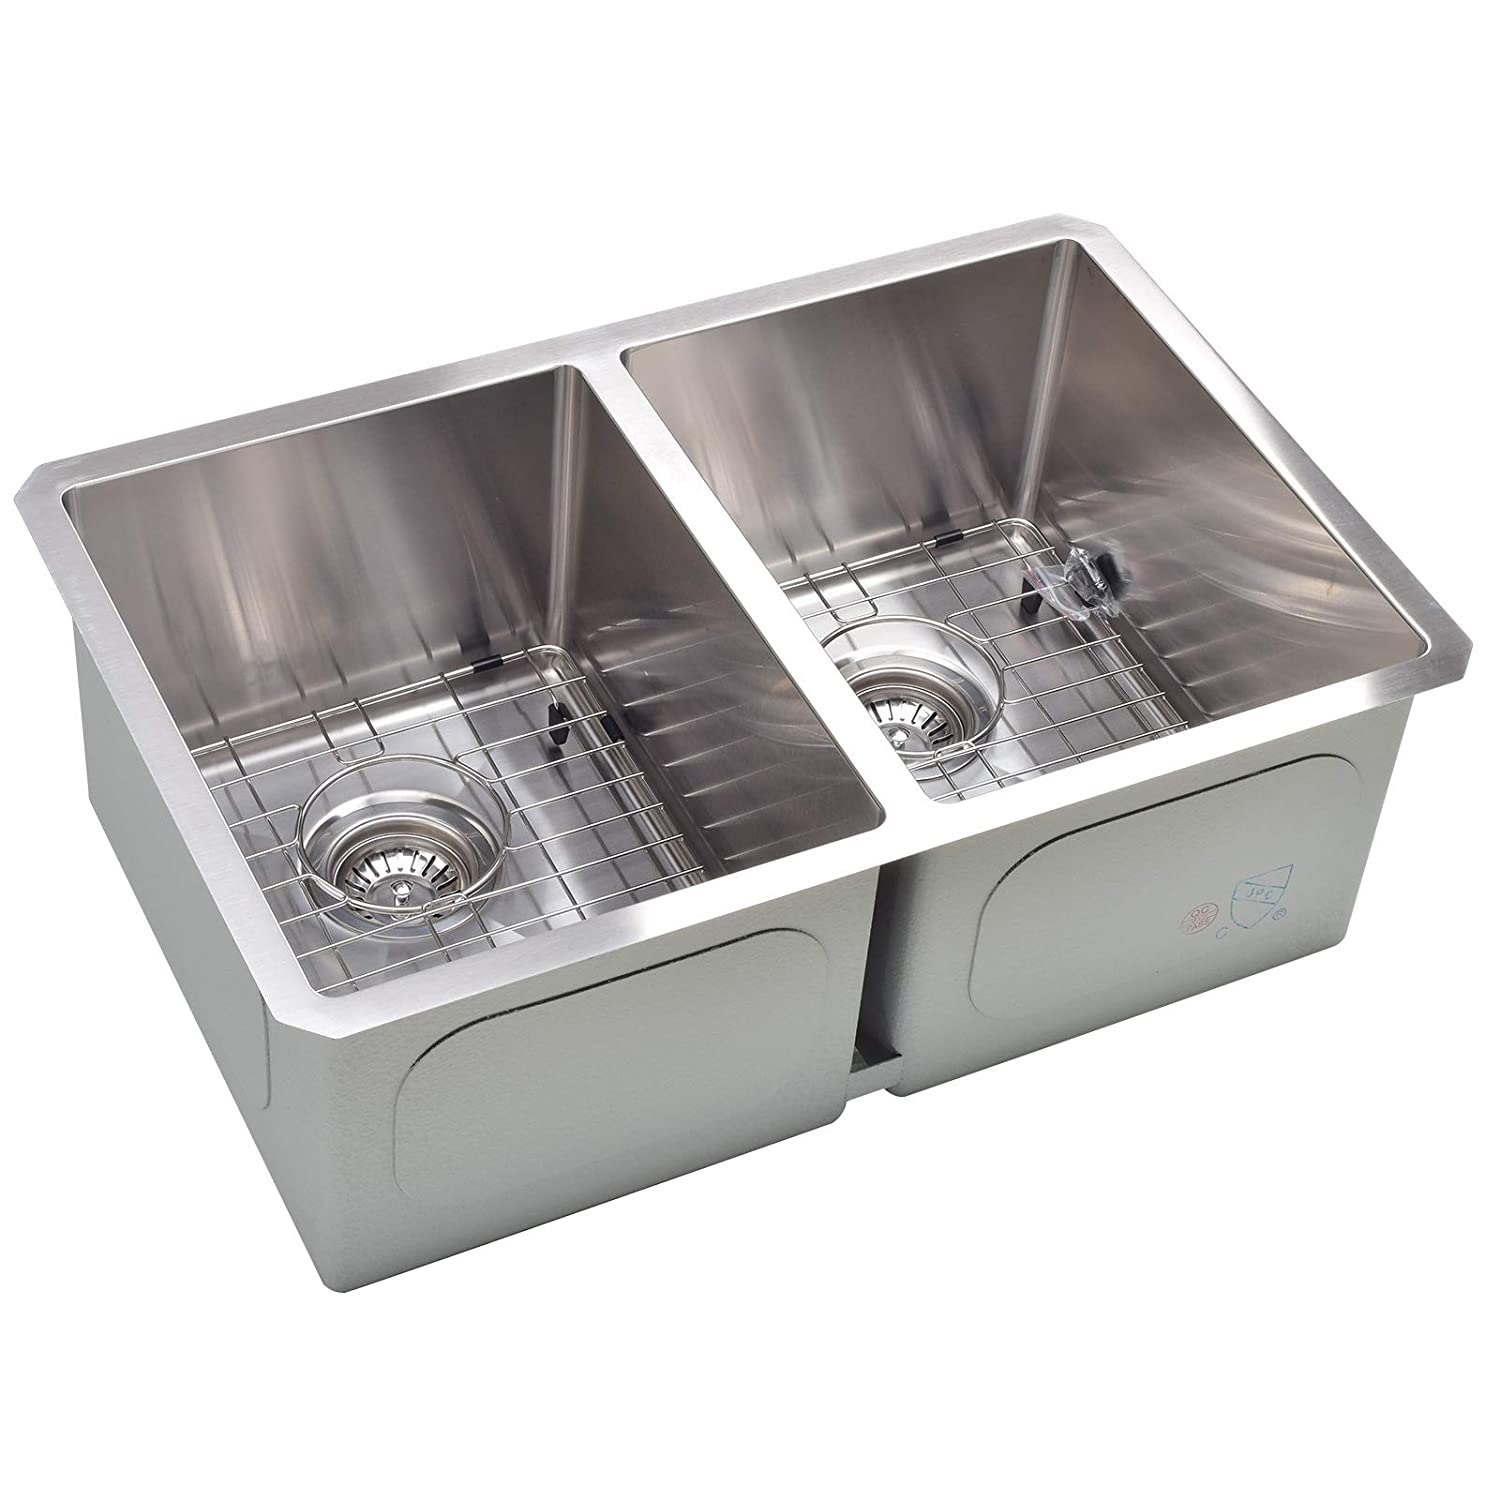 Koozzo undermount Kitchen Sink, 28 Rectangular Double Bowl, Stainless Steel,16 Gauge